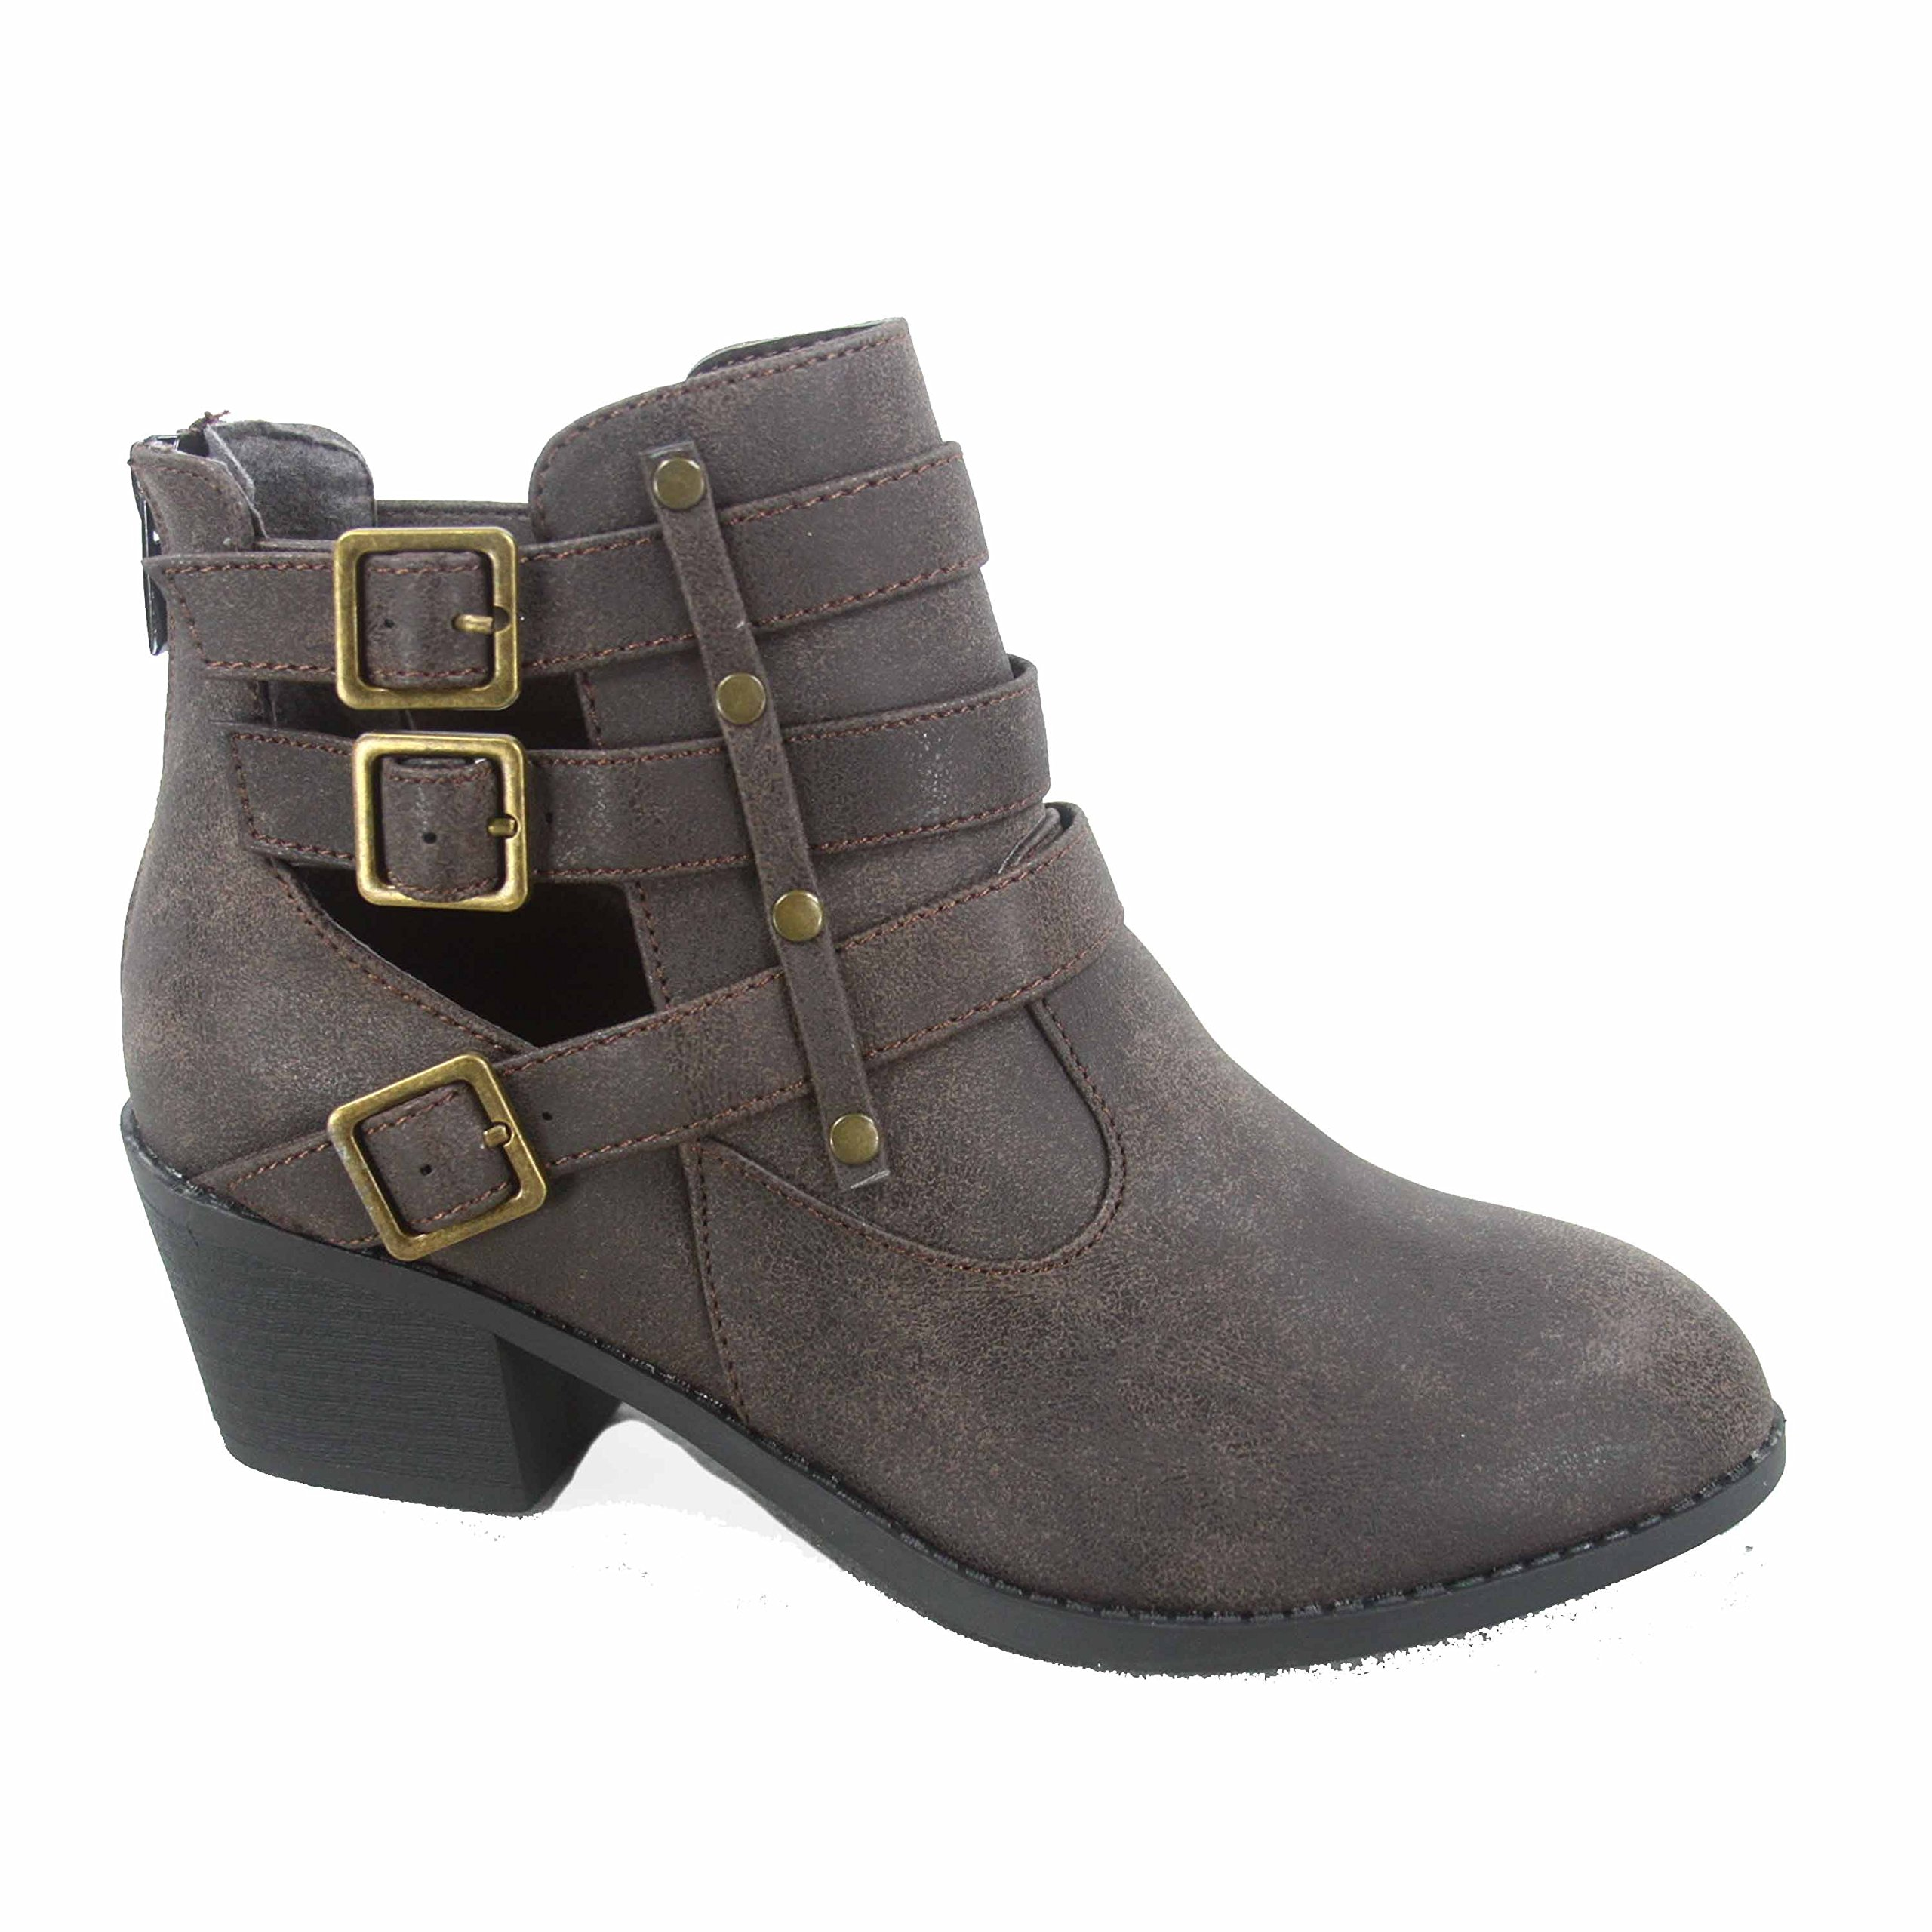 Forever Link Eury-1 Women's Fashion Round Toe Buckles Low Heel Ankle Booties Shoes,Brown,7.5